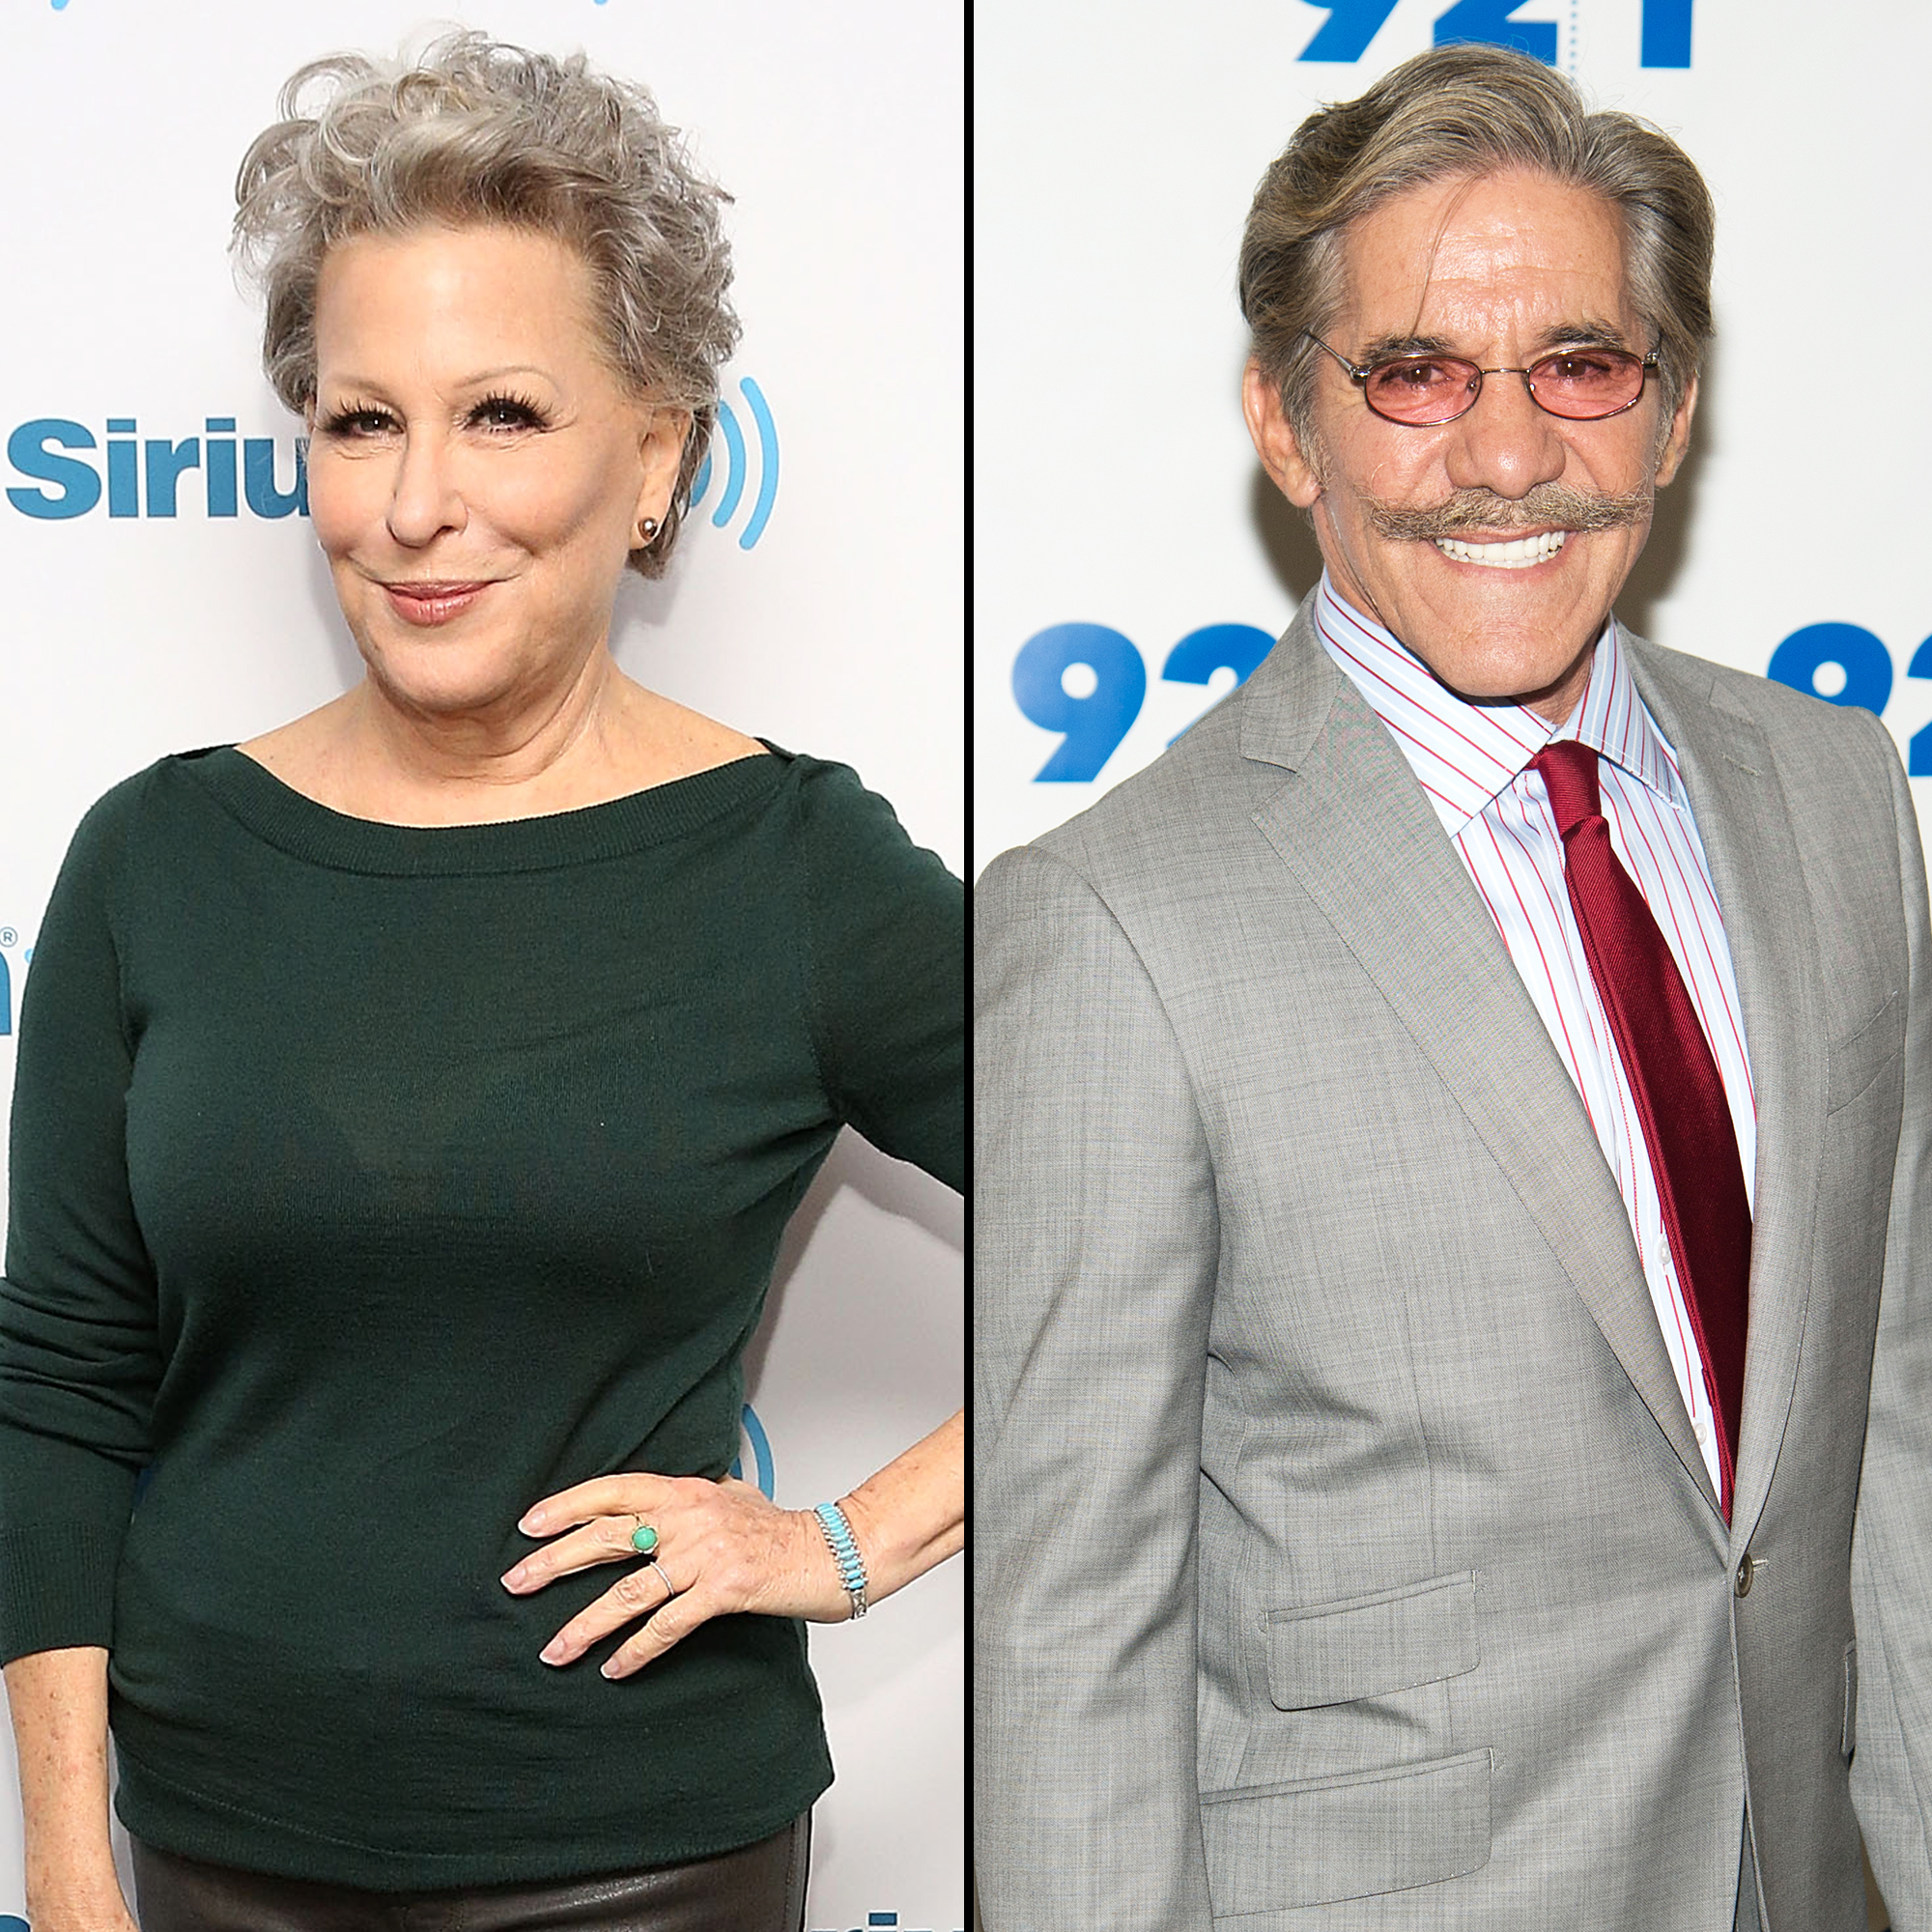 Geraldo Rivera apologizes to Bette Midler after groping accusation